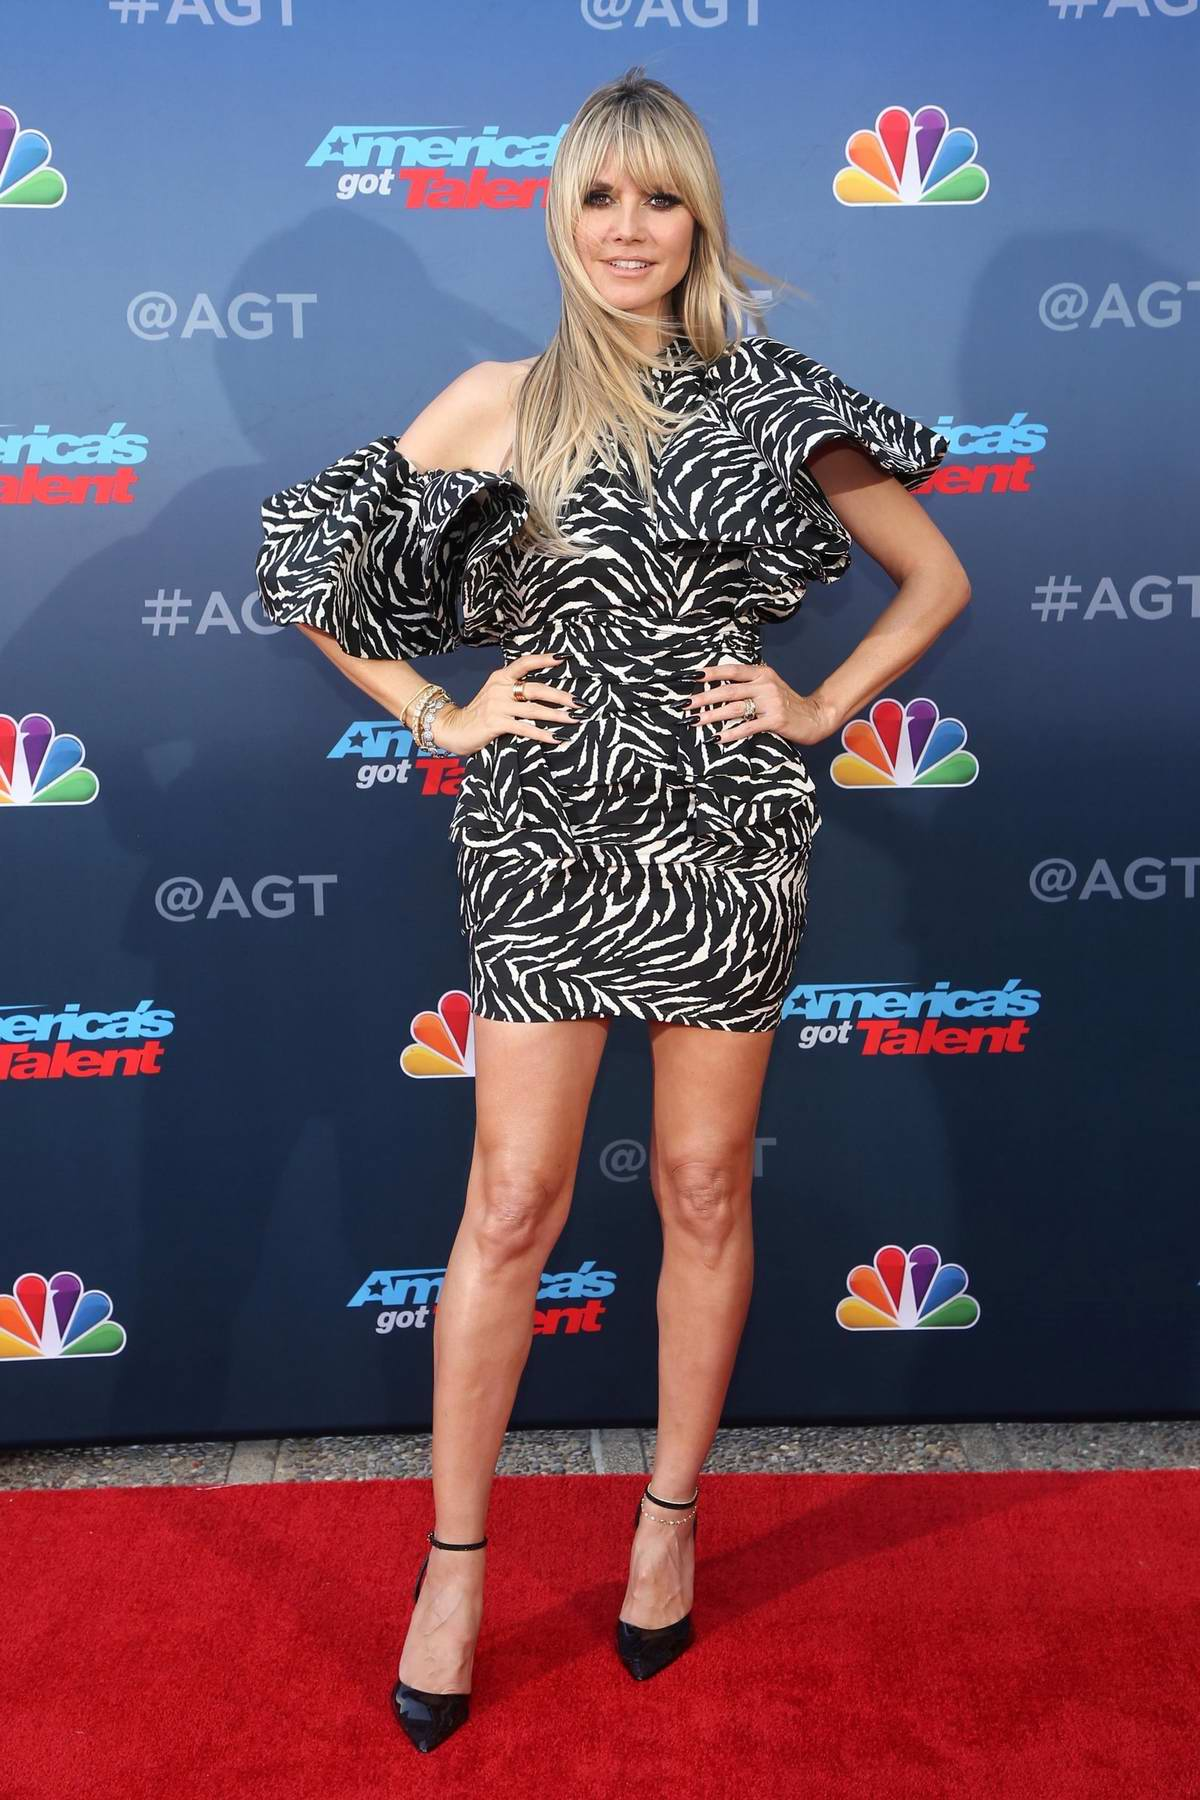 Heidi Klum attends the 'America's Got Talent' Season 15 Kickoff at Pasadena Civic Auditorium in Pasadena, California